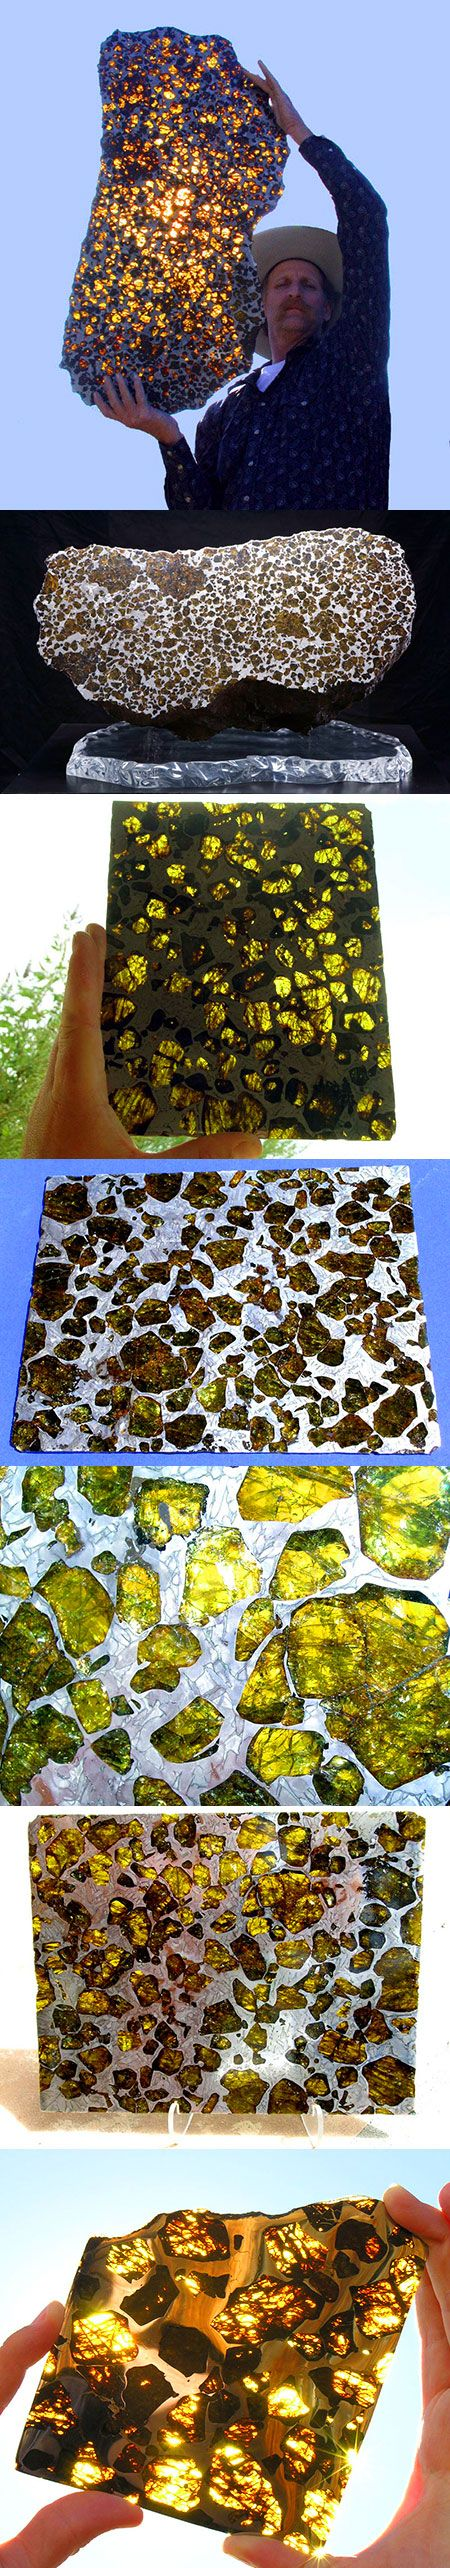 In the year 2000, a 2,211 lbs. meteorite was discovered near Fukang, a city located in the NW region of Xinjiang, China. Named the 'Fukang meteorite', it was identified as a pallasite, a type of stony–iron meteorite, with striking olivine crystals throughout.